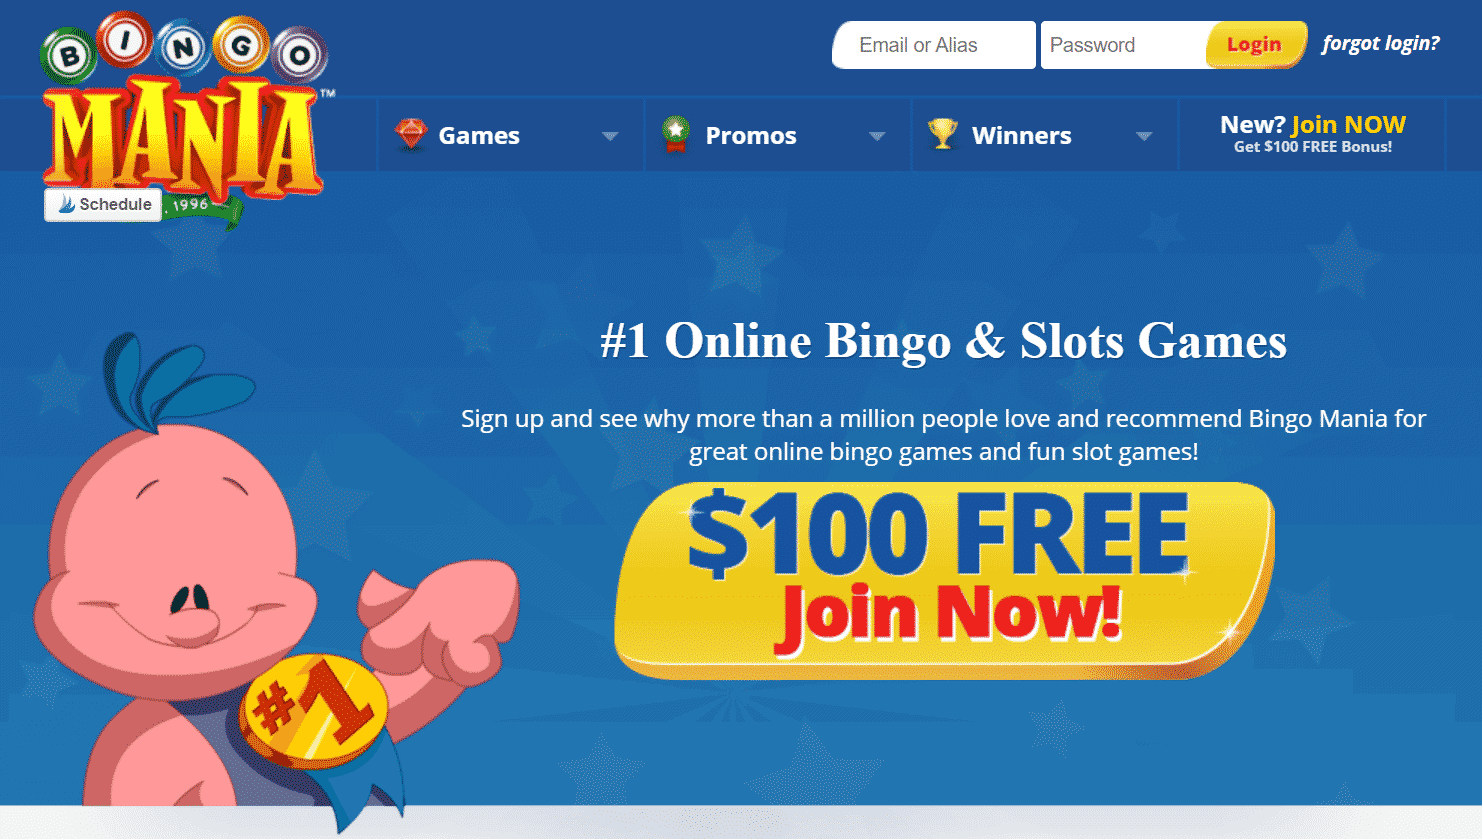 Bingo mania - earn money playing games